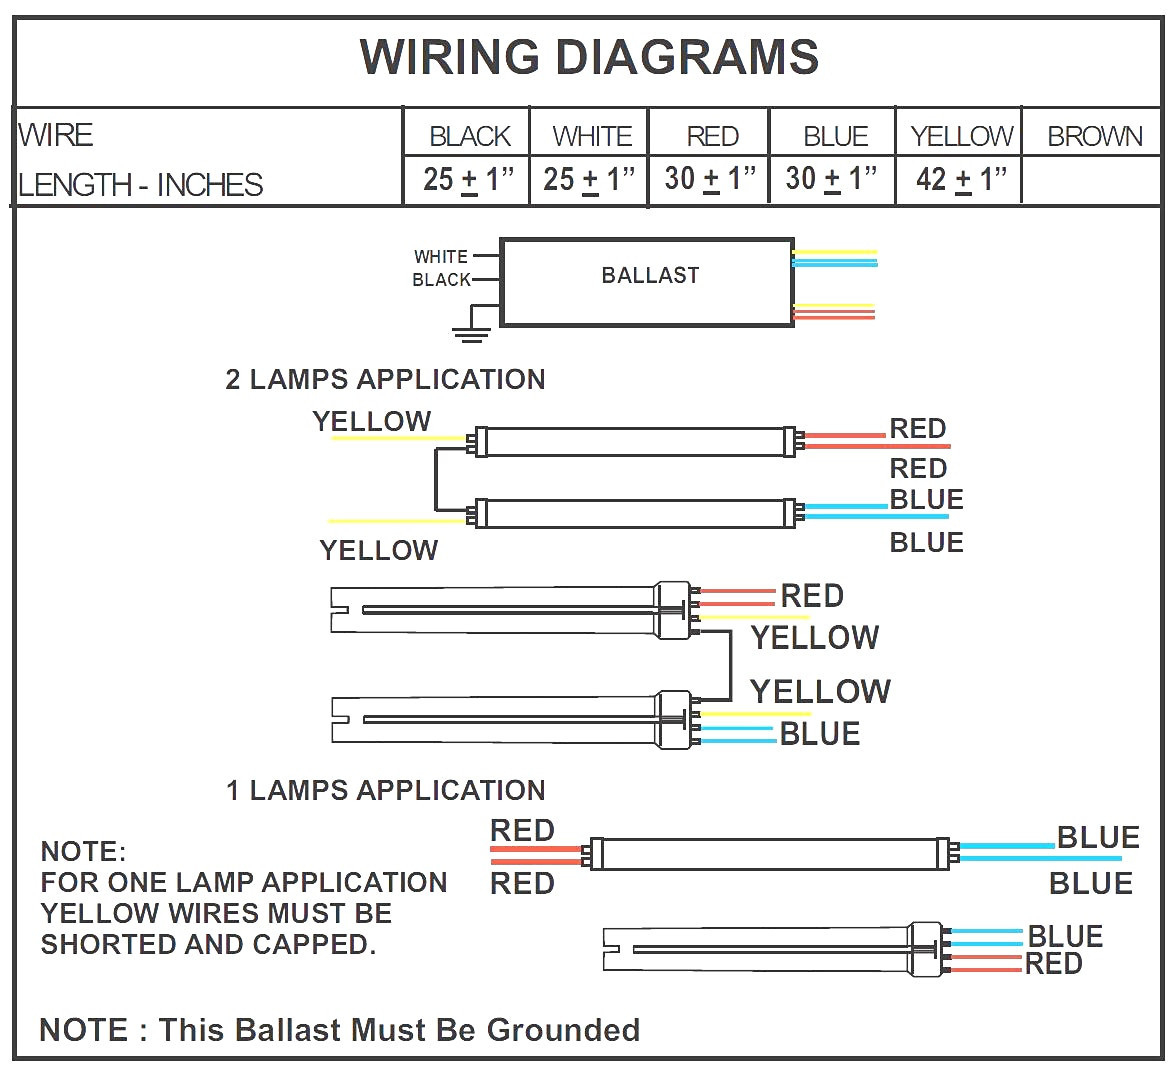 workhorse 3 ballast wiring diagram fulham workhorse wh5 120 l wiring diagram collection workhorse 2 ballast wiring diagram